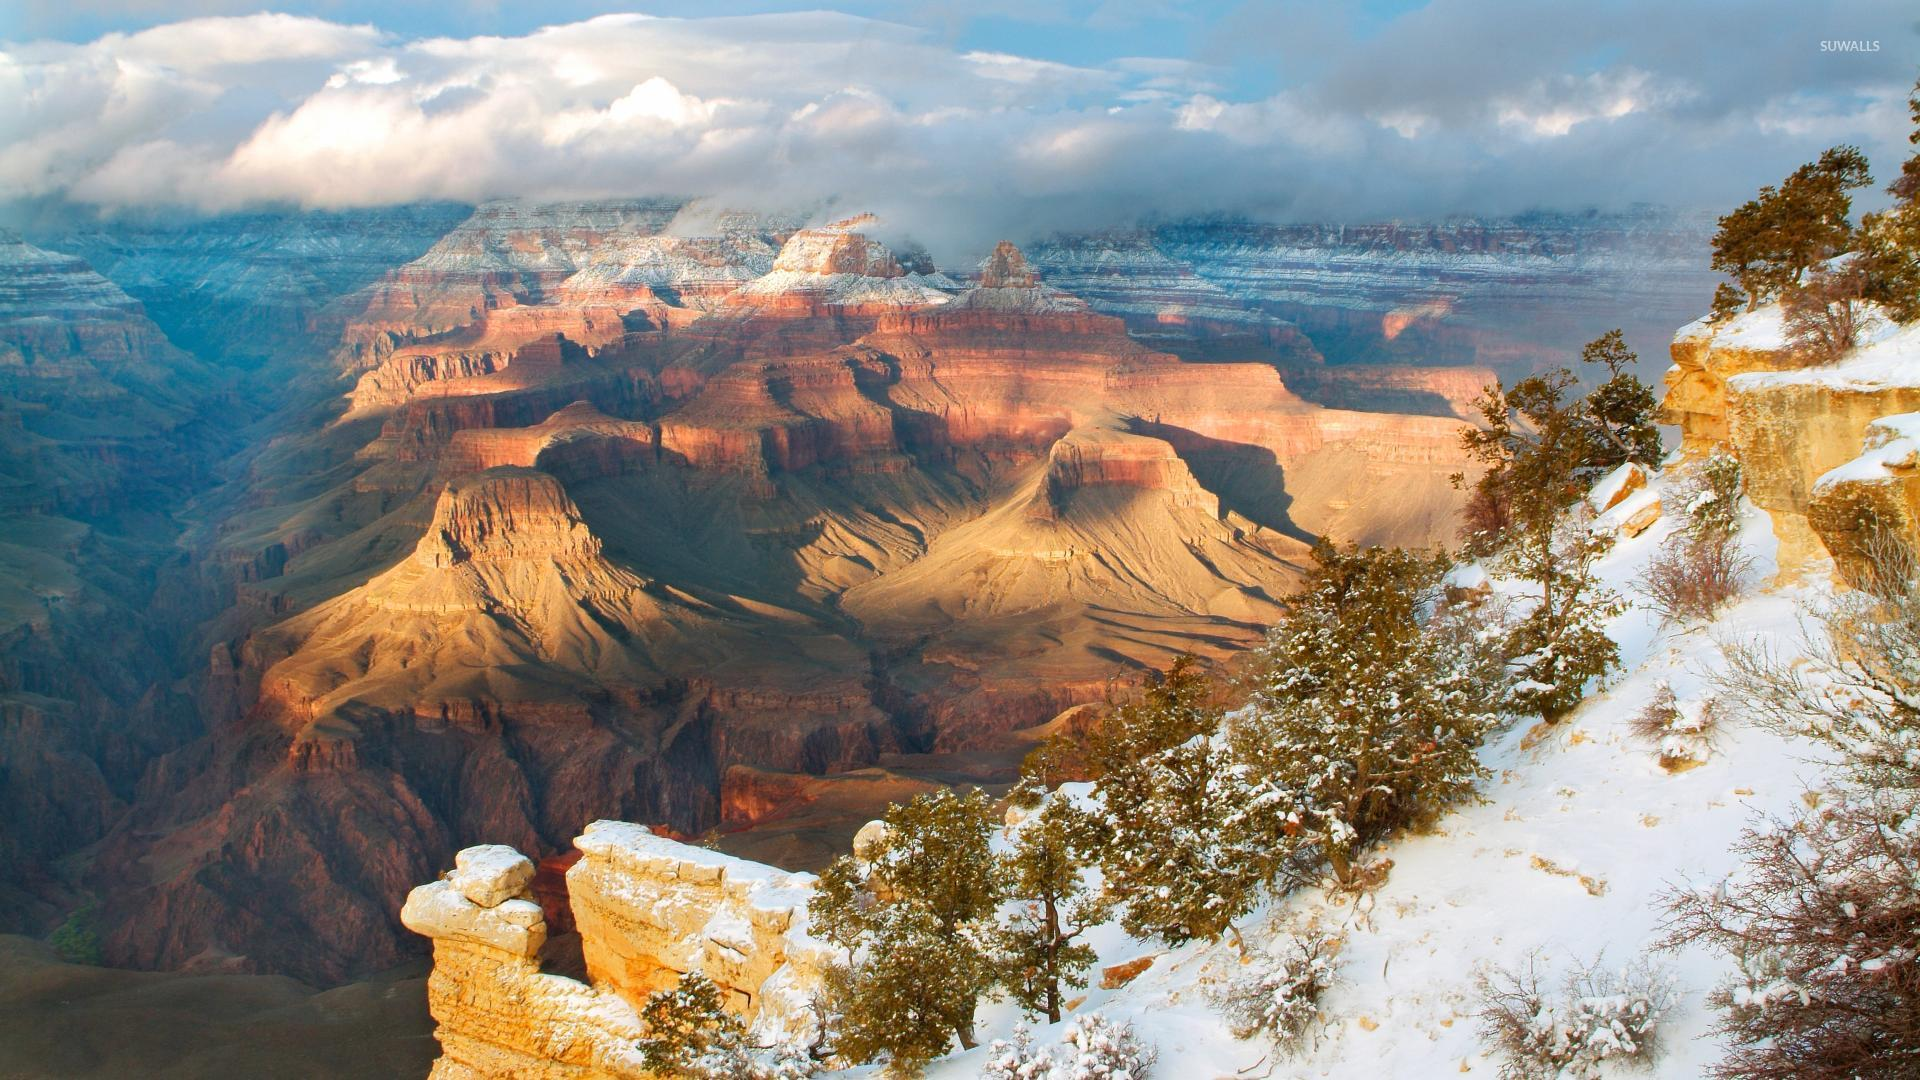 Grand Canyon 4K Wallpaper - WallpaperSafari